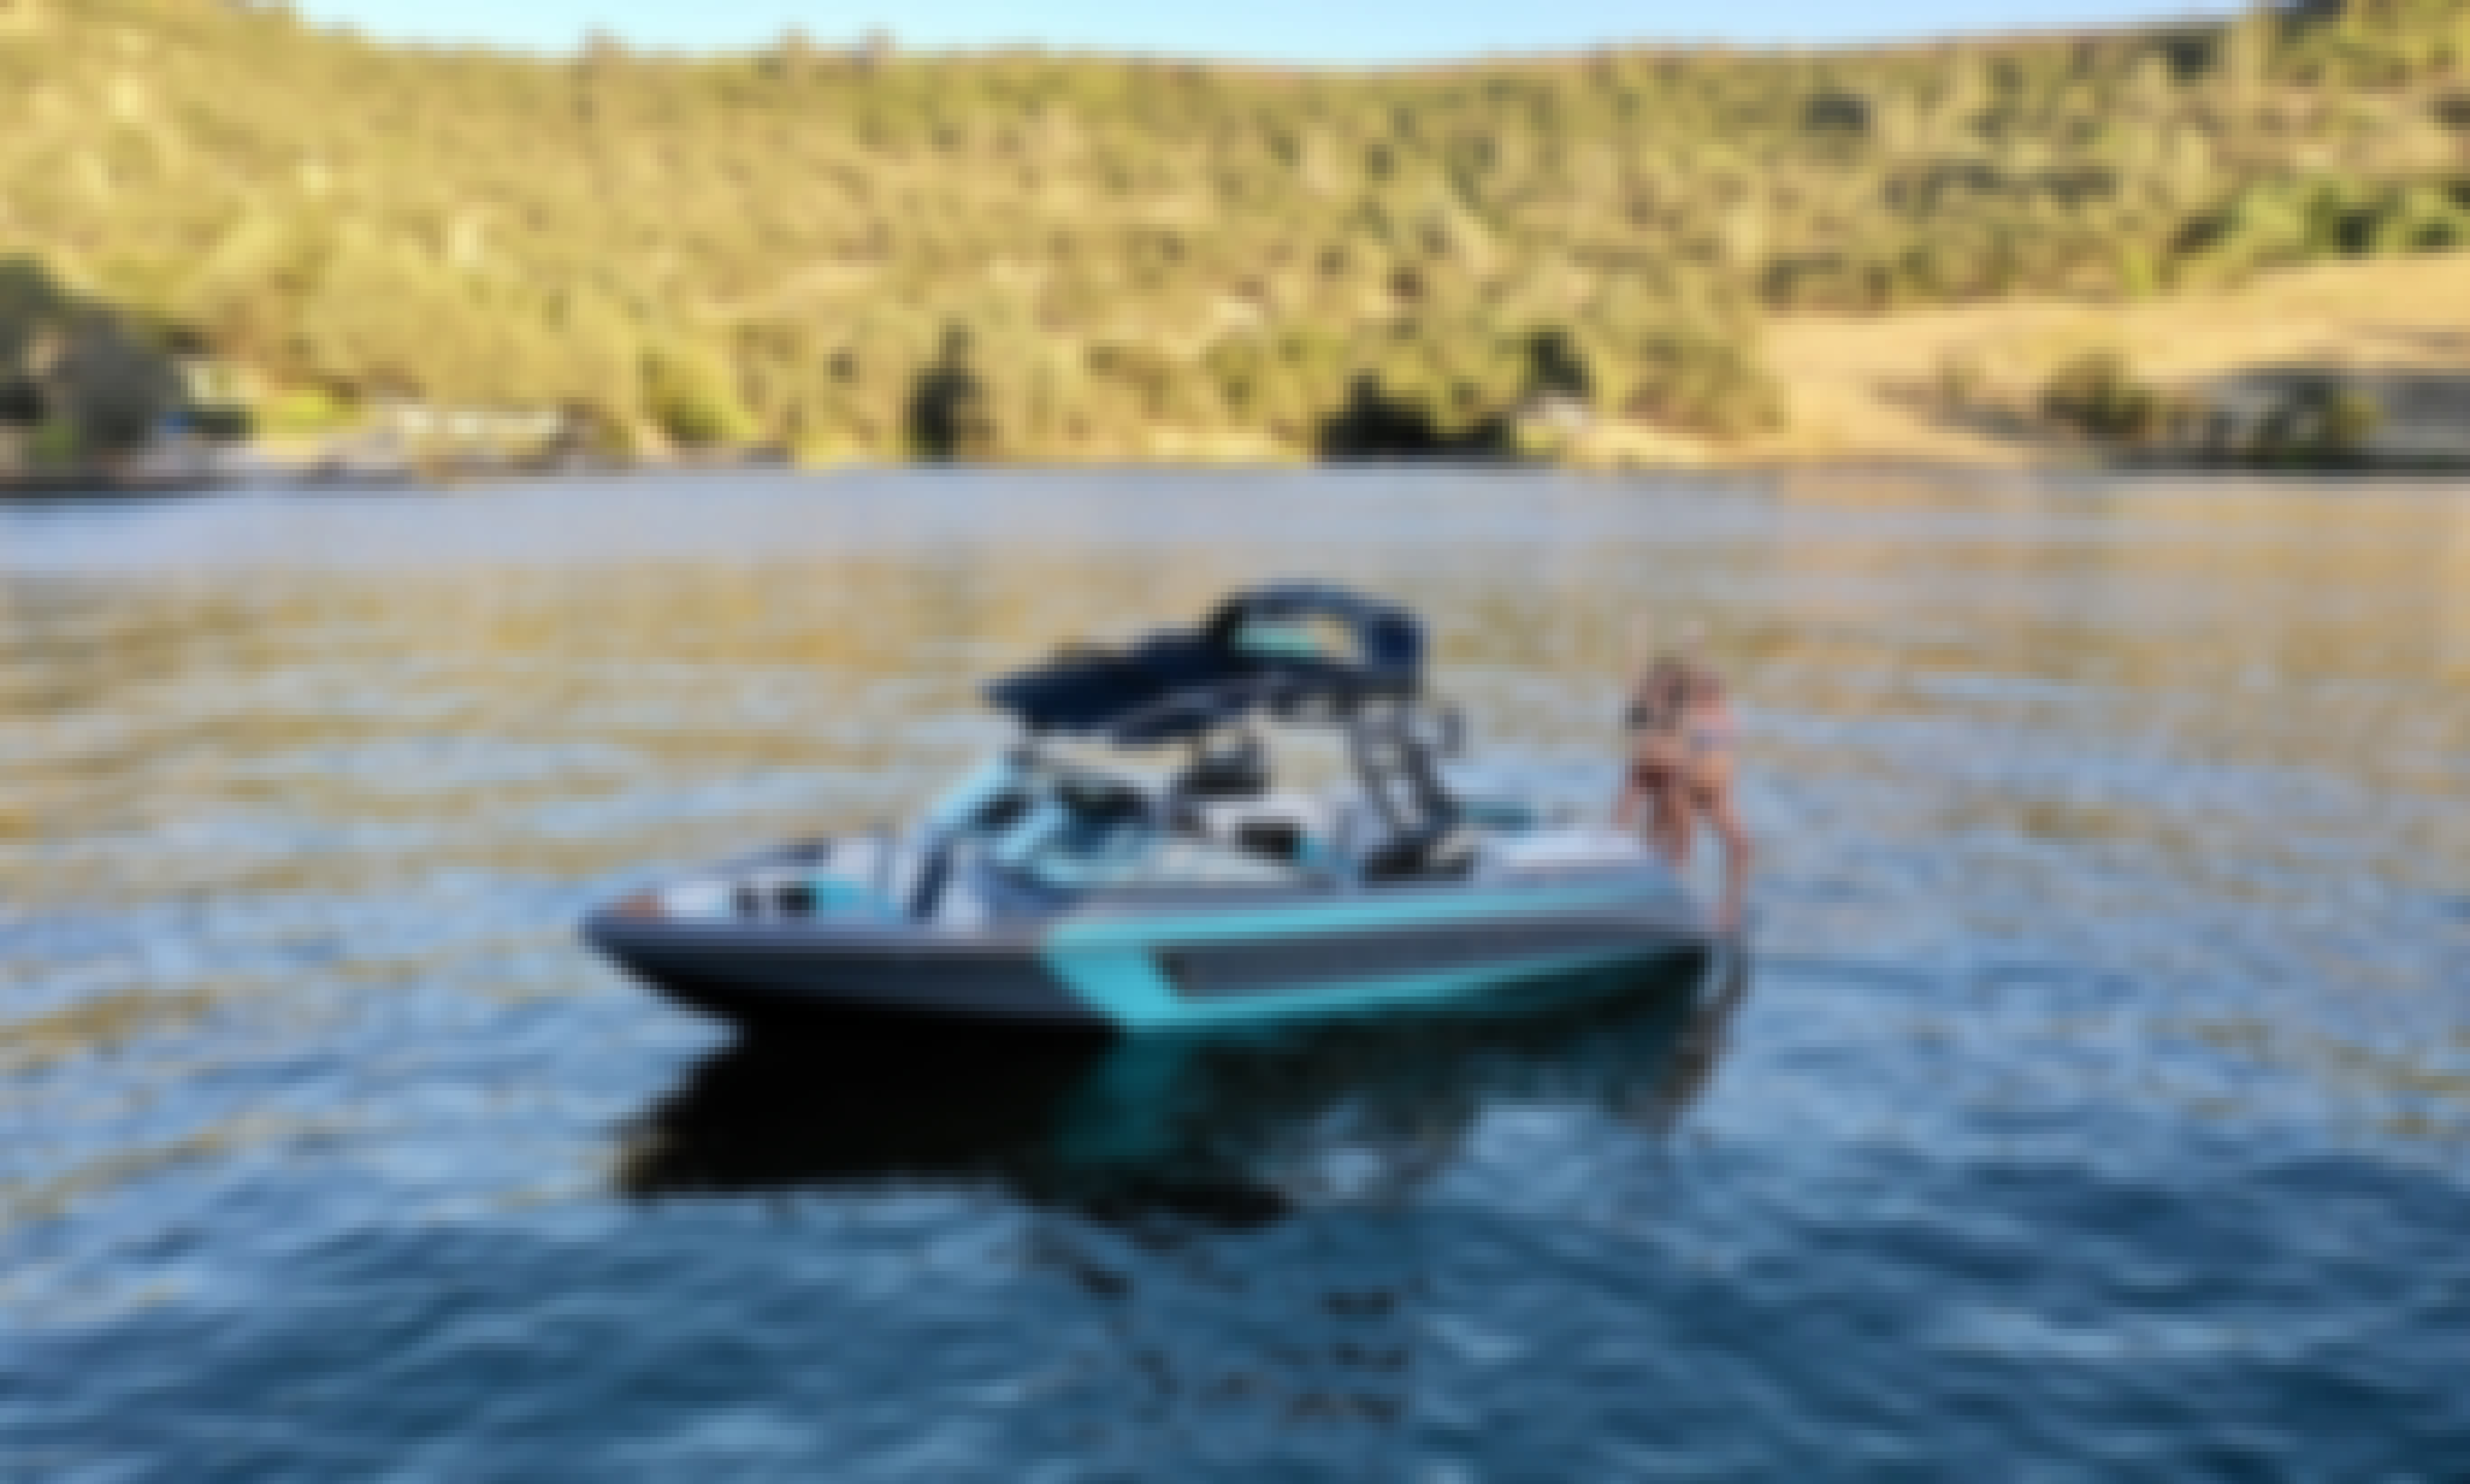 NEW Super Air Nautique 210 for Charter on Lake Tulloch